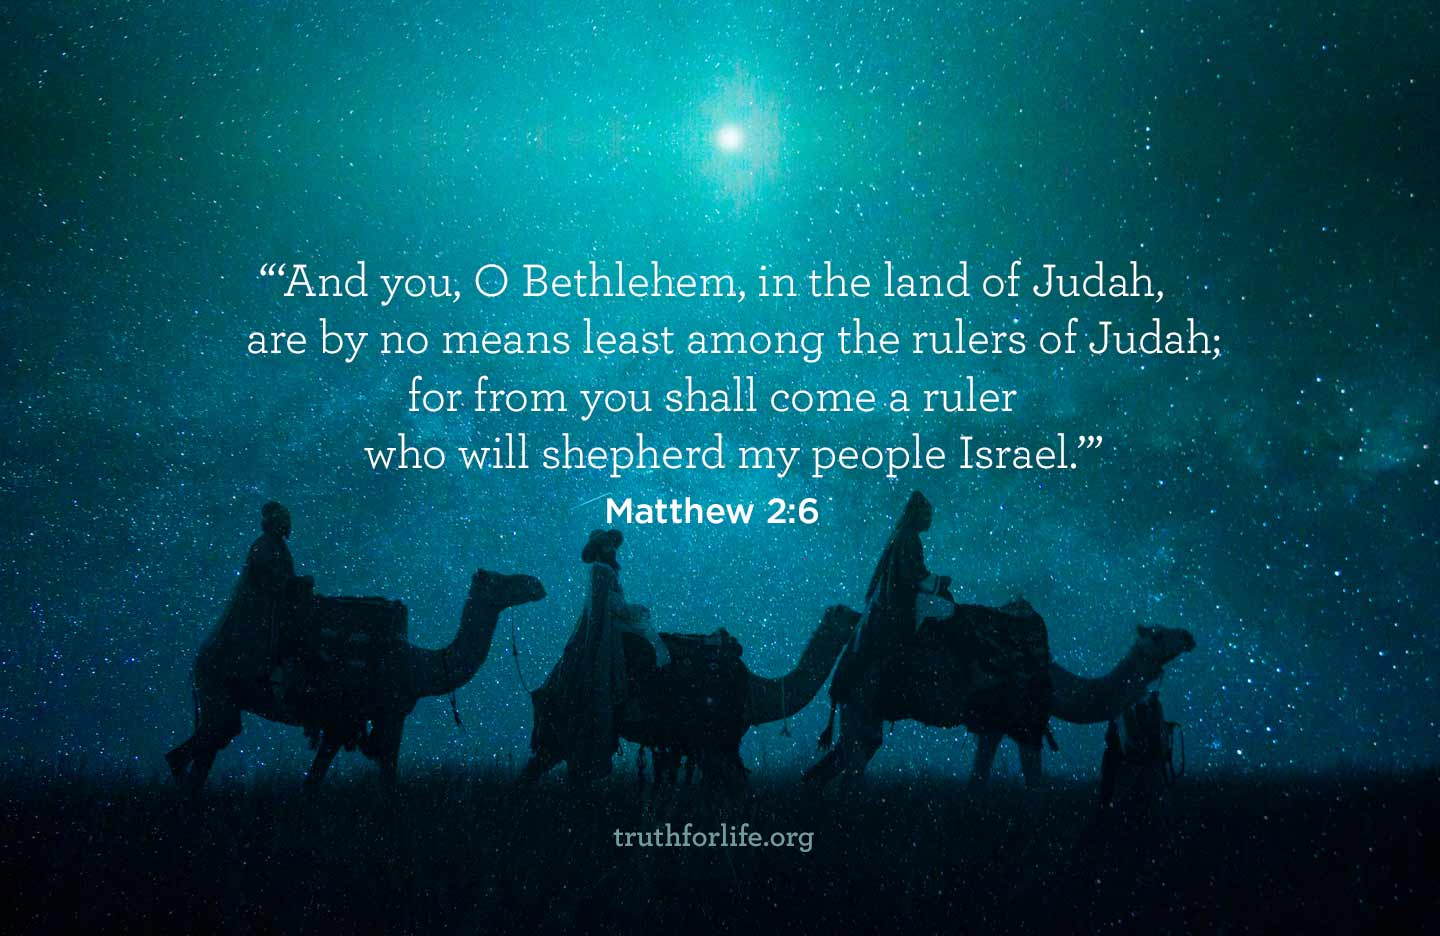 And You, O Bethlehem, in the land of Judah, are by no means least among the rulers of Judah; for from you shall come a ruler who will shepherd my people Israel. - Matthew 2:6